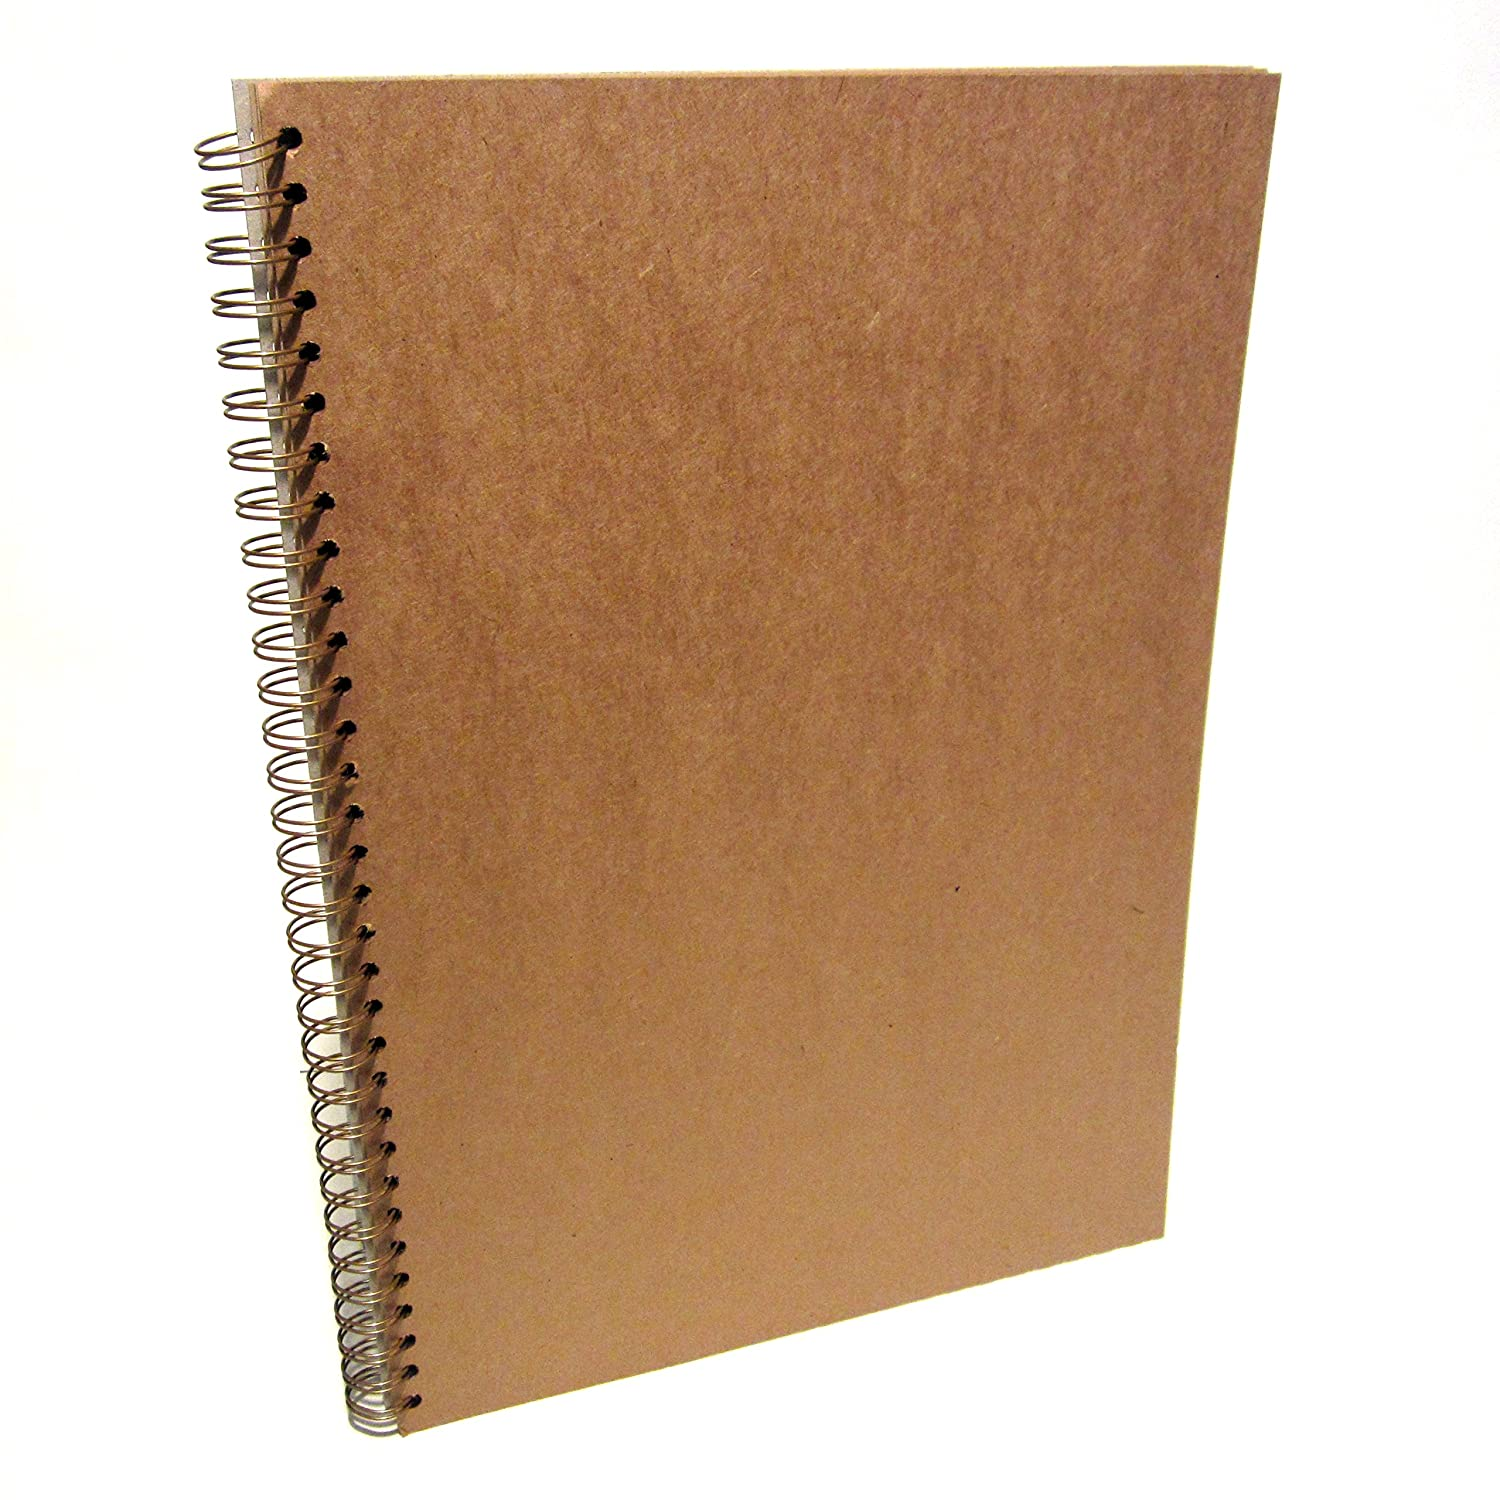 A3 Prime Scrapbook/Sketchbook, Kraft paper, Album, Display Book, Portrait Kraft Scrapbook